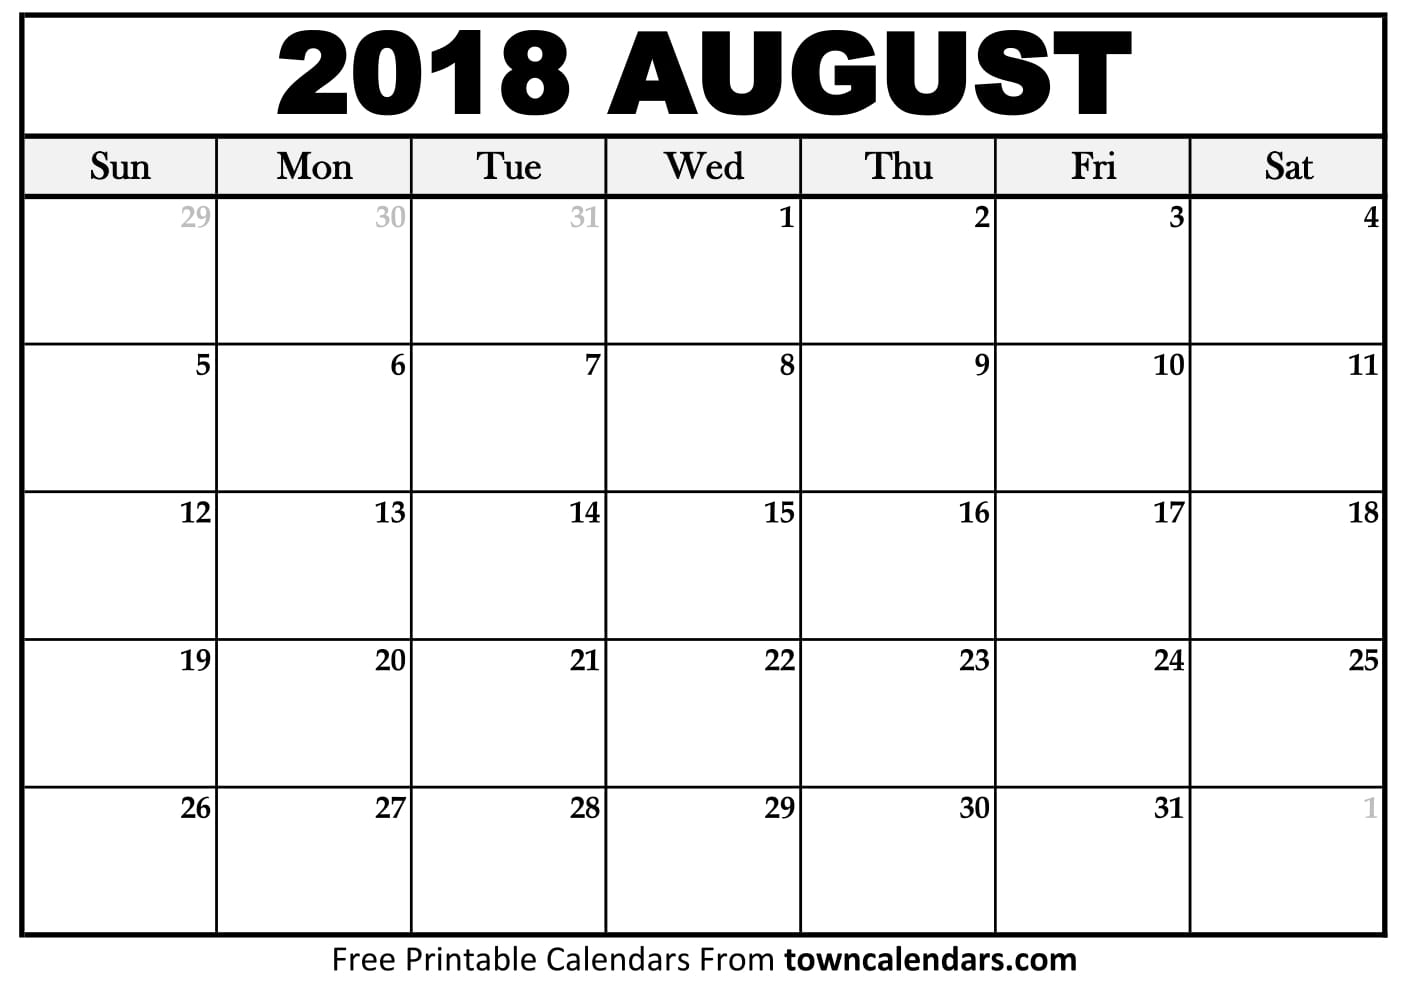 free 5 august 2018 calendar printable template source template Calendar August 2018 Printable Worksheets erdferdf